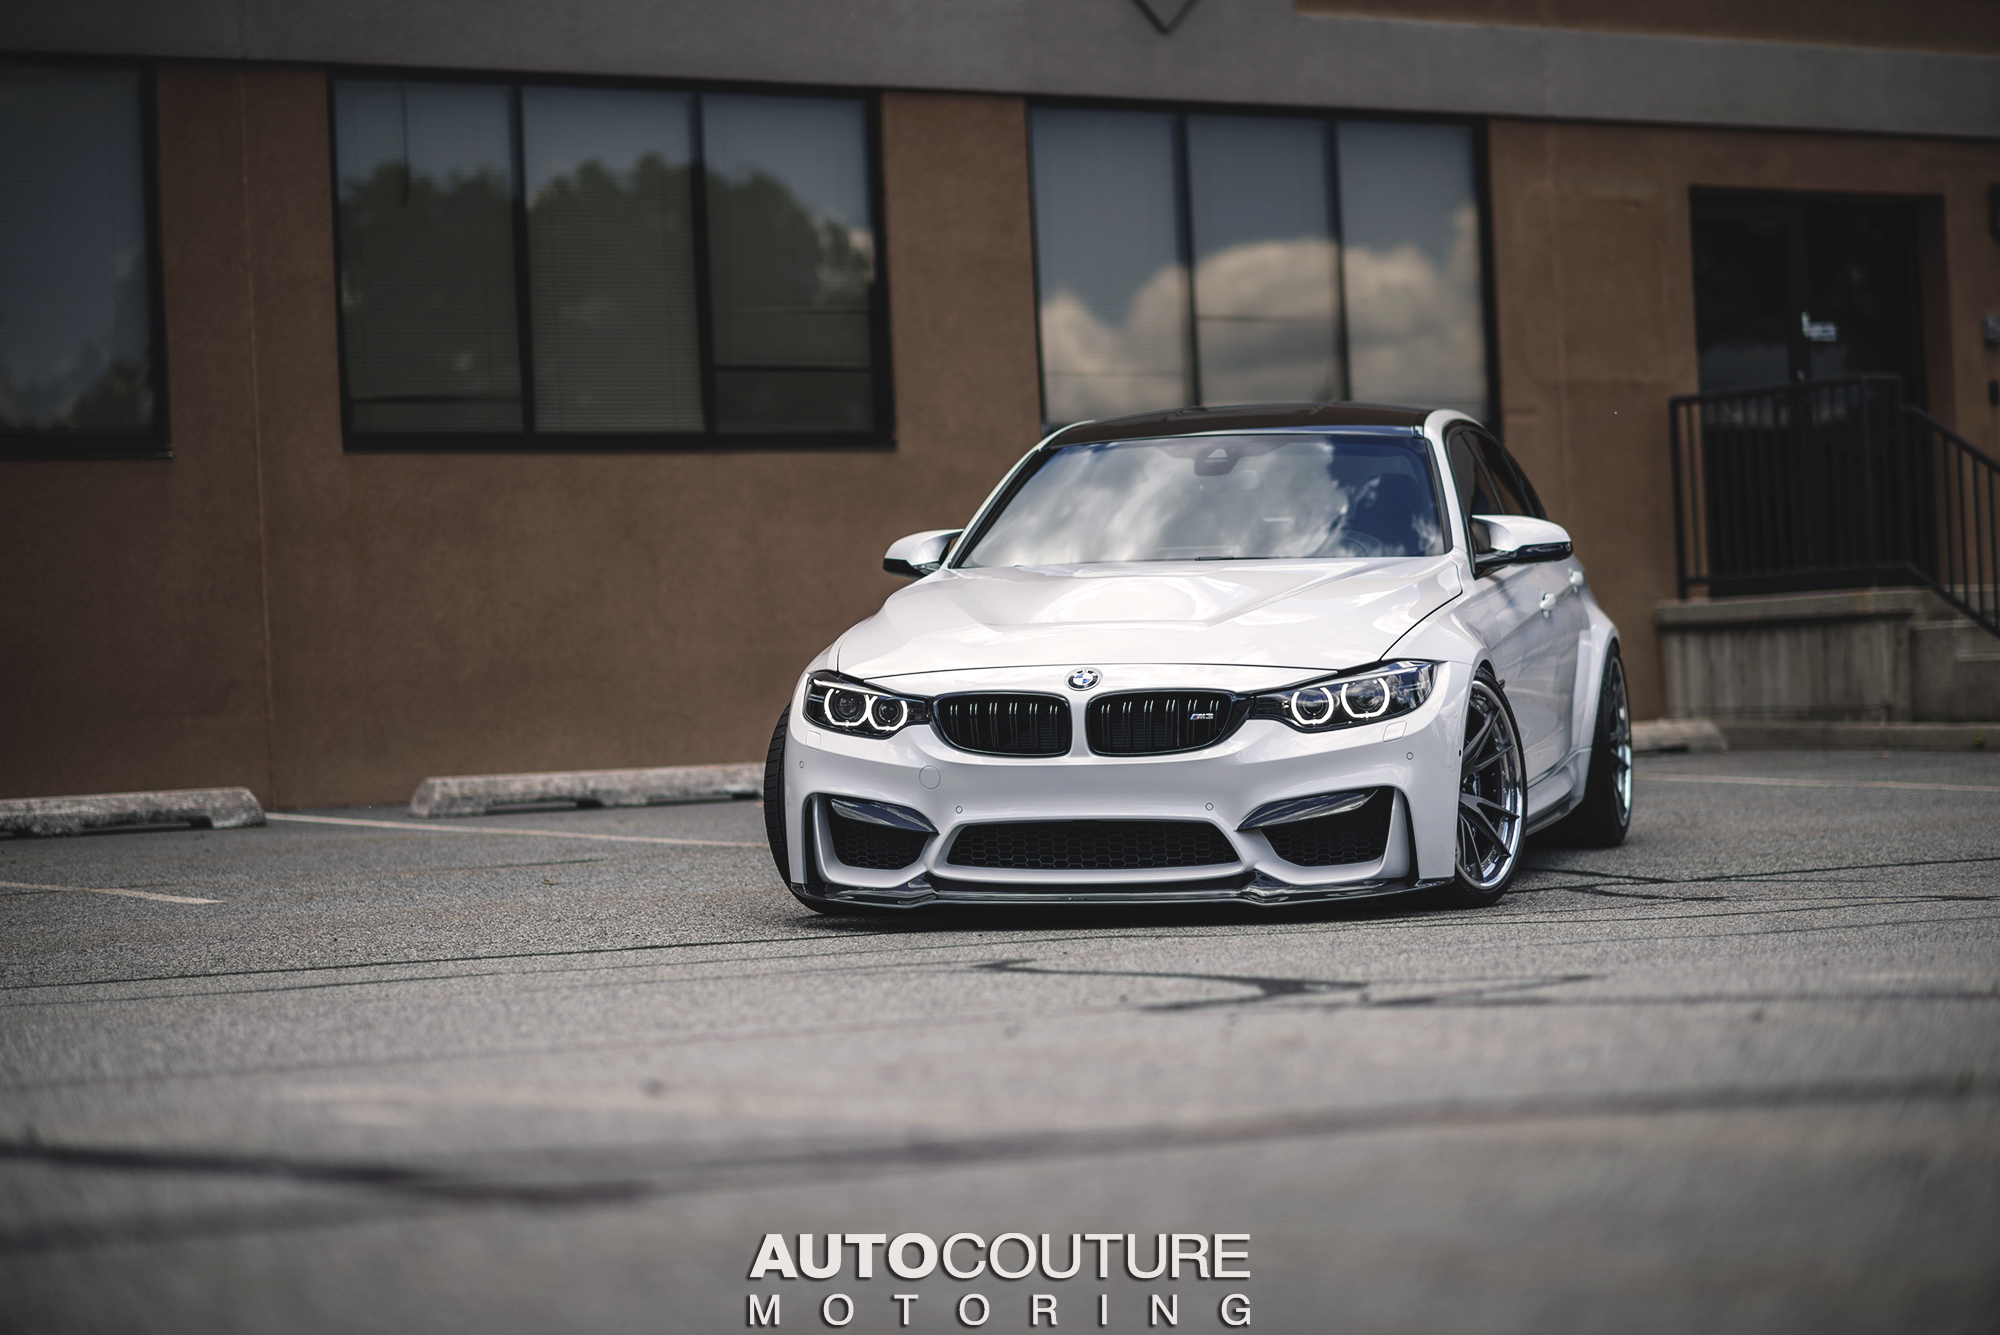 BMW M3 F80 by AUTOCouture Motoring